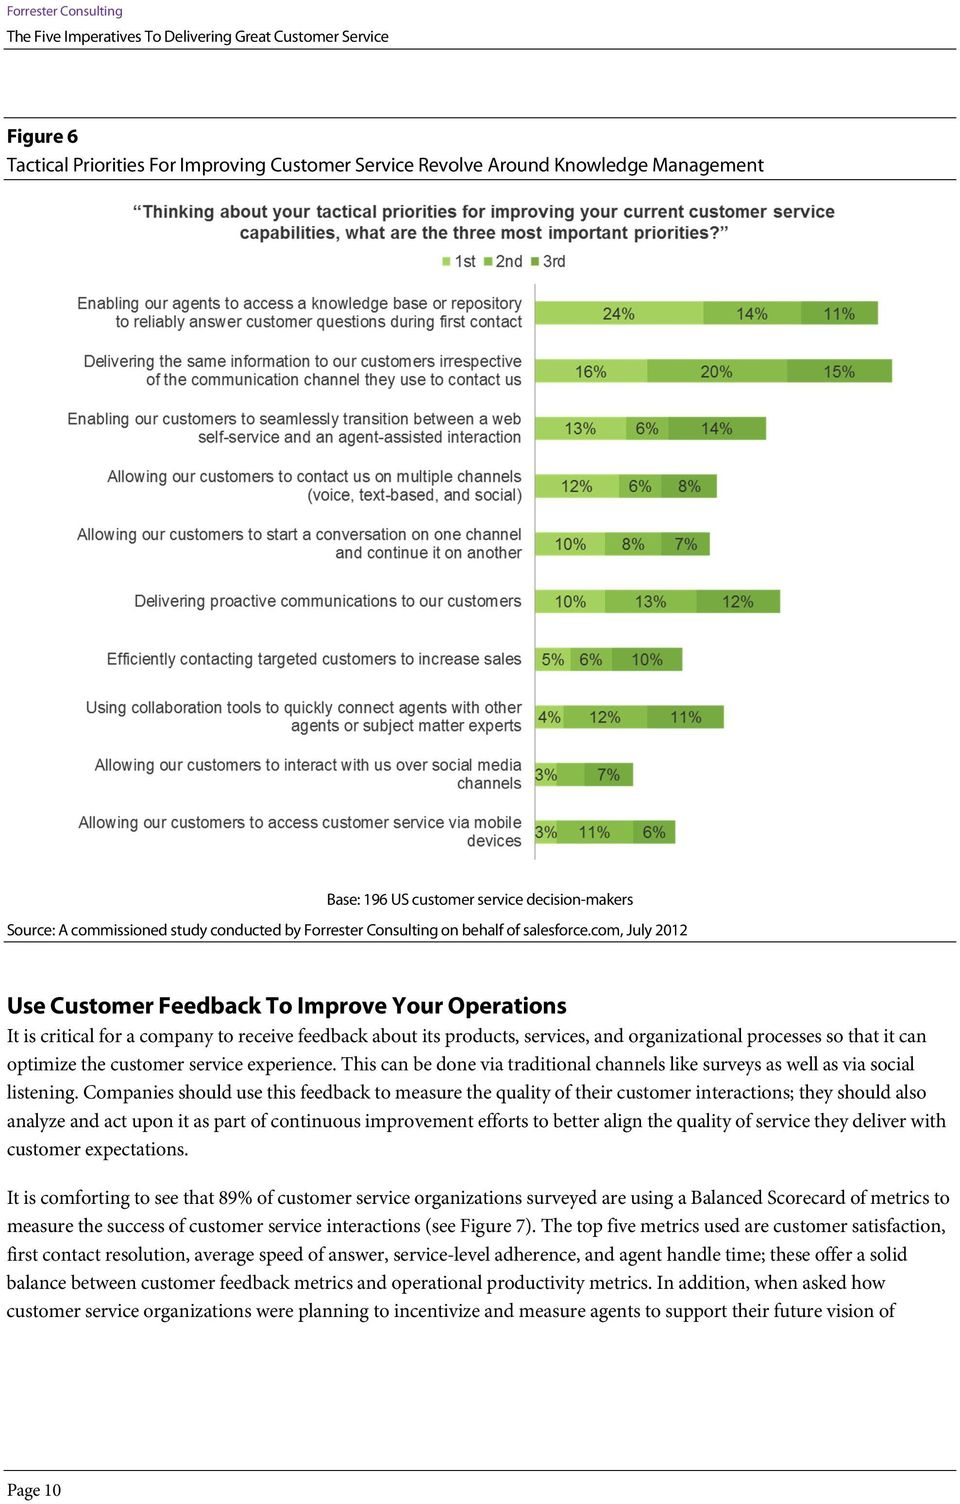 Companies should use this feedback to measure the quality of their customer interactions; they should also analyze and act upon it as part of continuous improvement efforts to better align the